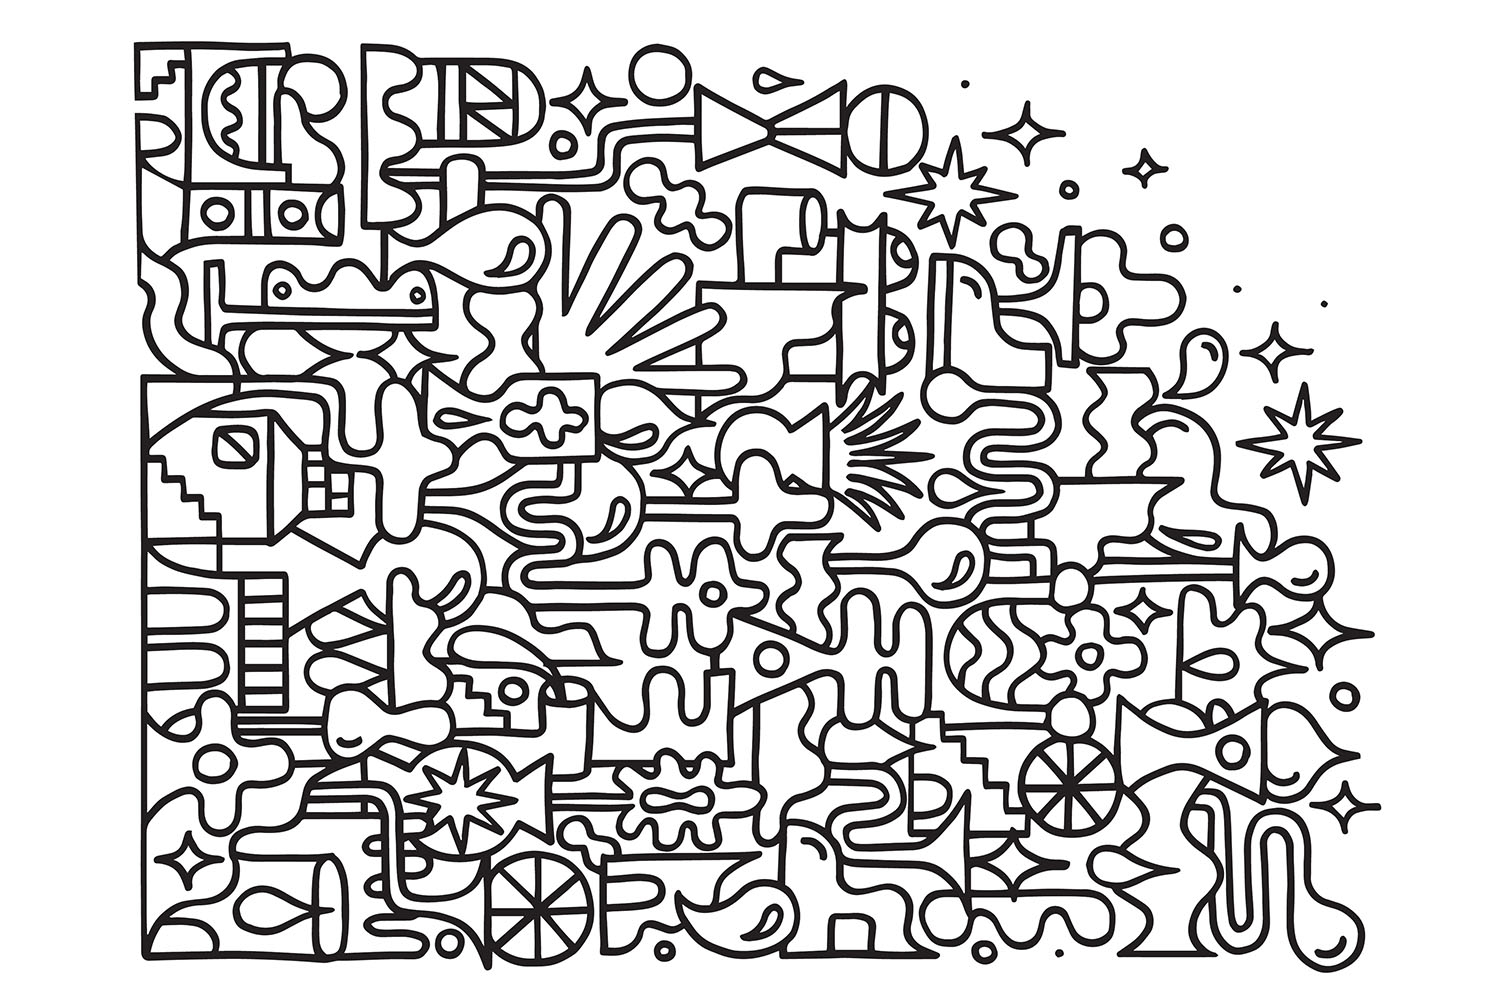 "Whether you're looking for something other than Netflix to do or something to keep your little ones entertained, what better way to pass the time than to color?! Artists in Seattle have created free coloring pages you can download and print right at home! You can not only get to know some local artists but also keep your mind engaged in a different way during quarantine. Pages can be downloaded from{&nbsp;}<a  href=""https://stayinsidethelines.co/"" target=""_blank"">stayinsidethelines.co</a>. Make sure to tag{&nbsp;}<a  href=""https://www.instagram.com/Stayinsidethelinesseattle/"" target=""_blank"">@StayInsideTheLinesSeattle{&nbsp;}</a>and use{&nbsp;}<a  href=""https://www.instagram.com/explore/tags/stayinsidethelinessea/"" target=""_blank"">#STAYINSIDETheLinesSEA{&nbsp;}</a>when posting to social media! (Image:{&nbsp;}@Jesse_Brown)"